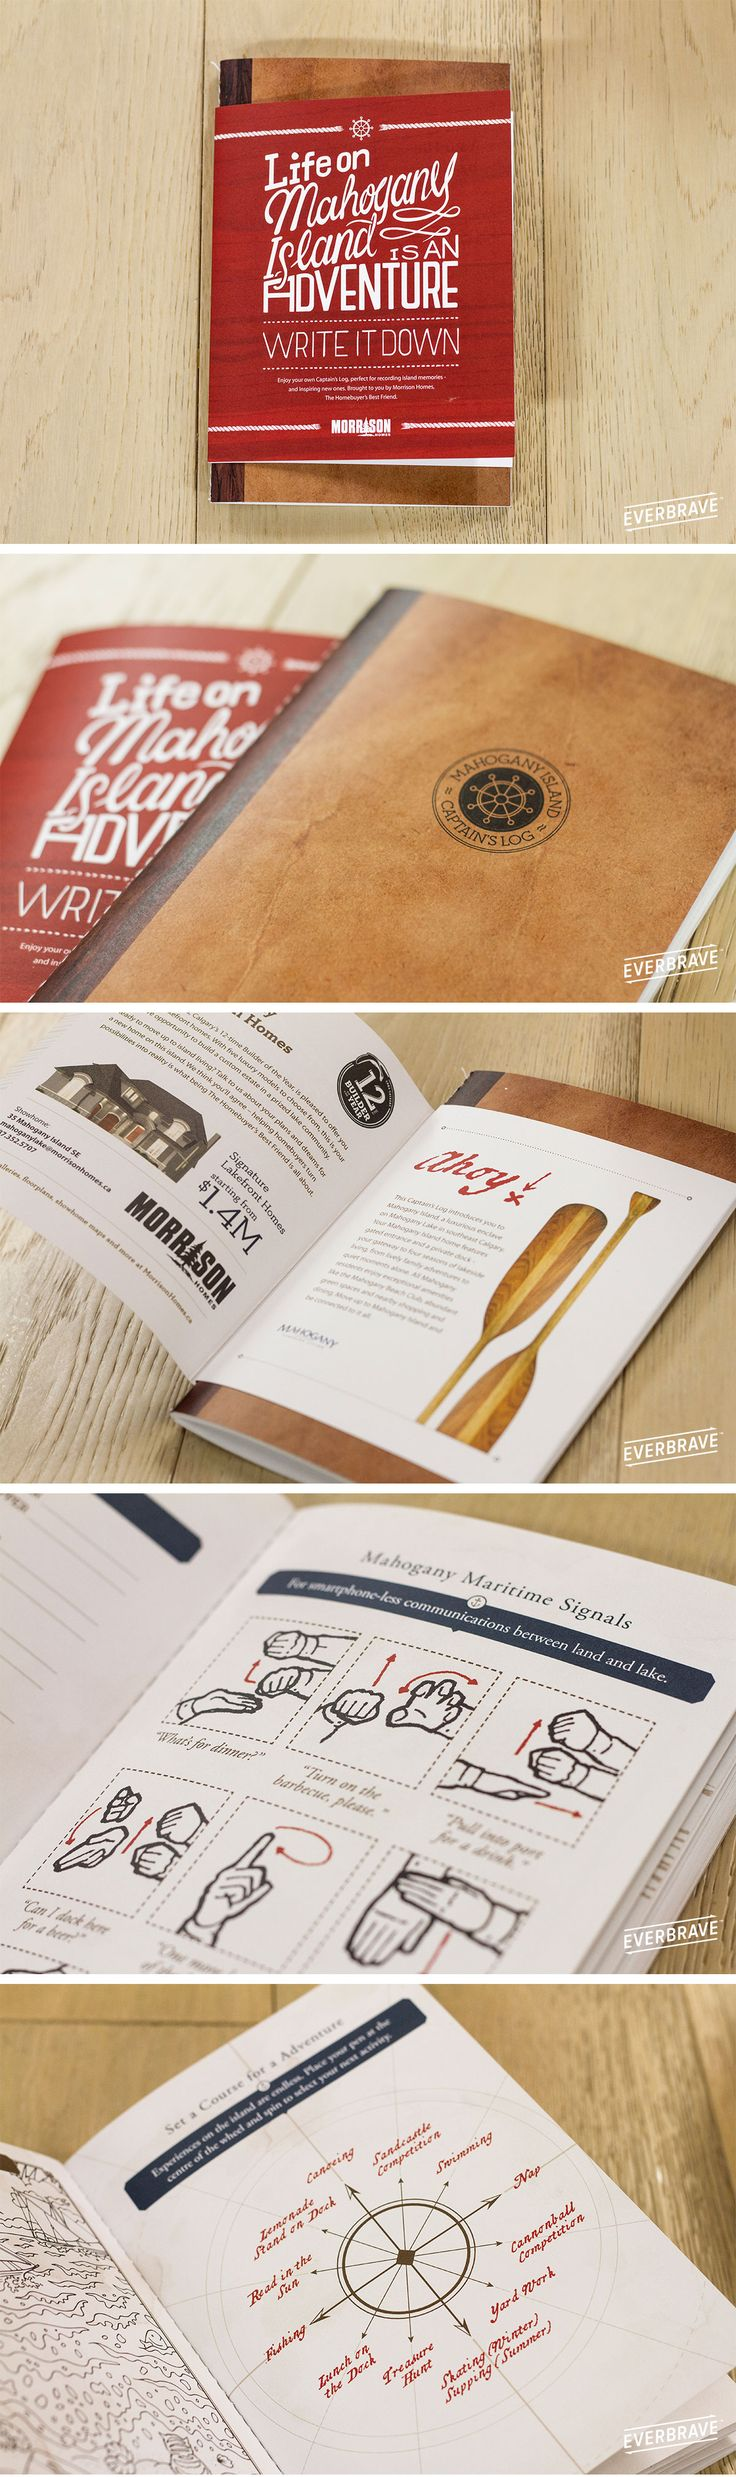 We created this fun Captain's Log Direct Mail with activities for our client.